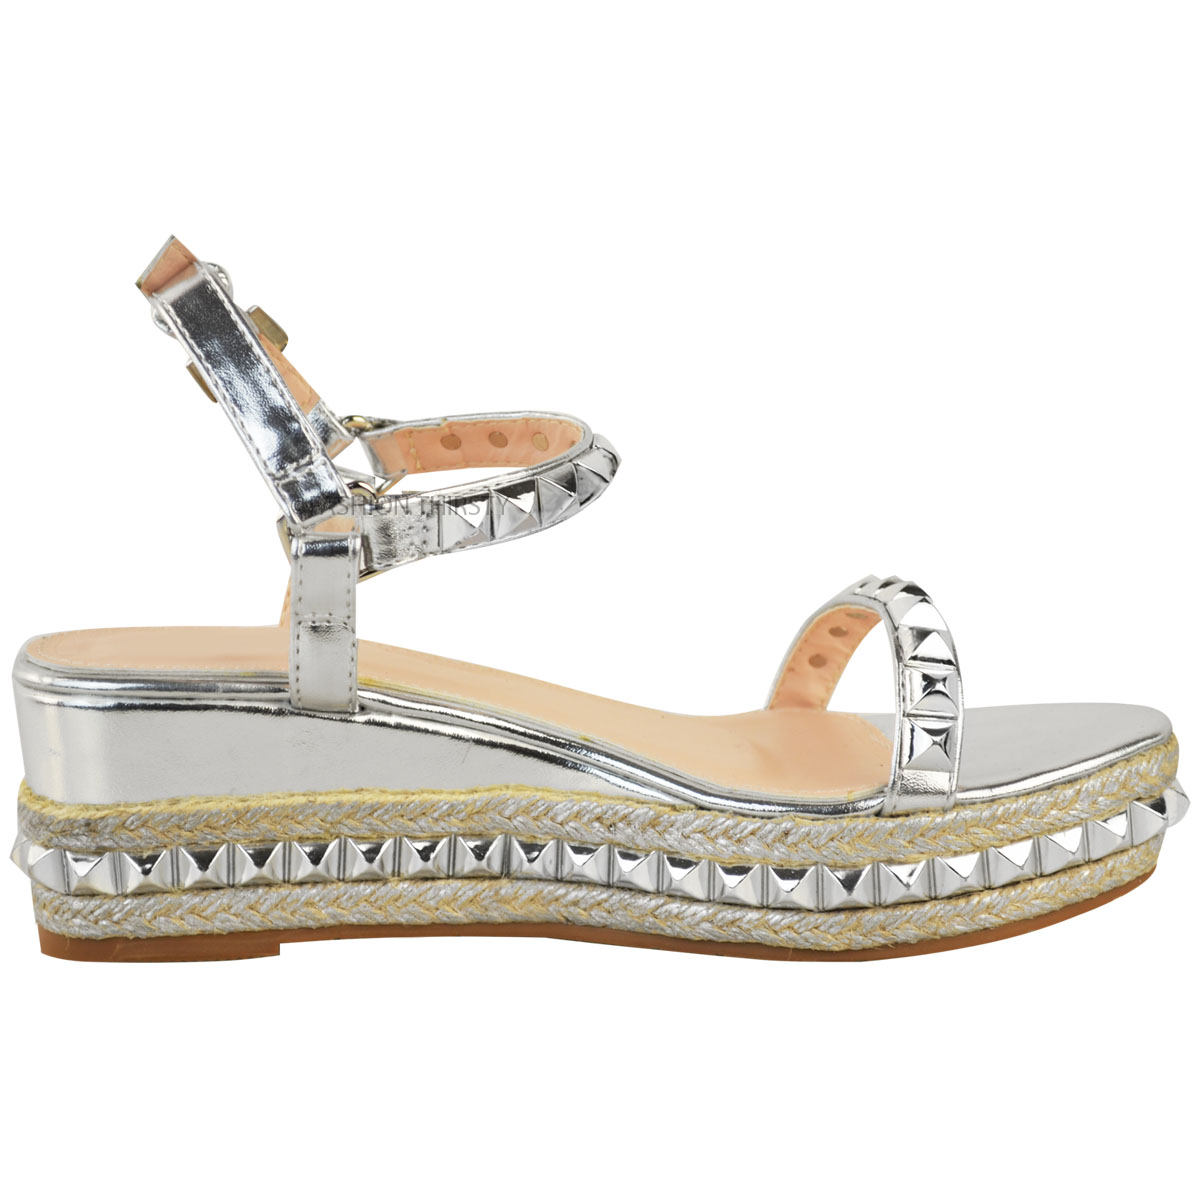 Ladies-Womens-Studded-Low-Wedge-Espadrille-Sandals-Platform-Rose-Gold-Shoes-Size thumbnail 9